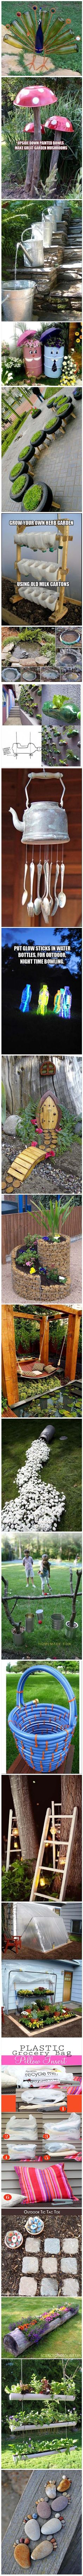 Simple Outdoor Ideas That Are Borderline Genius – 25 Pics | I Think My Moms Gone CrazyI Think My Moms Gone Crazy